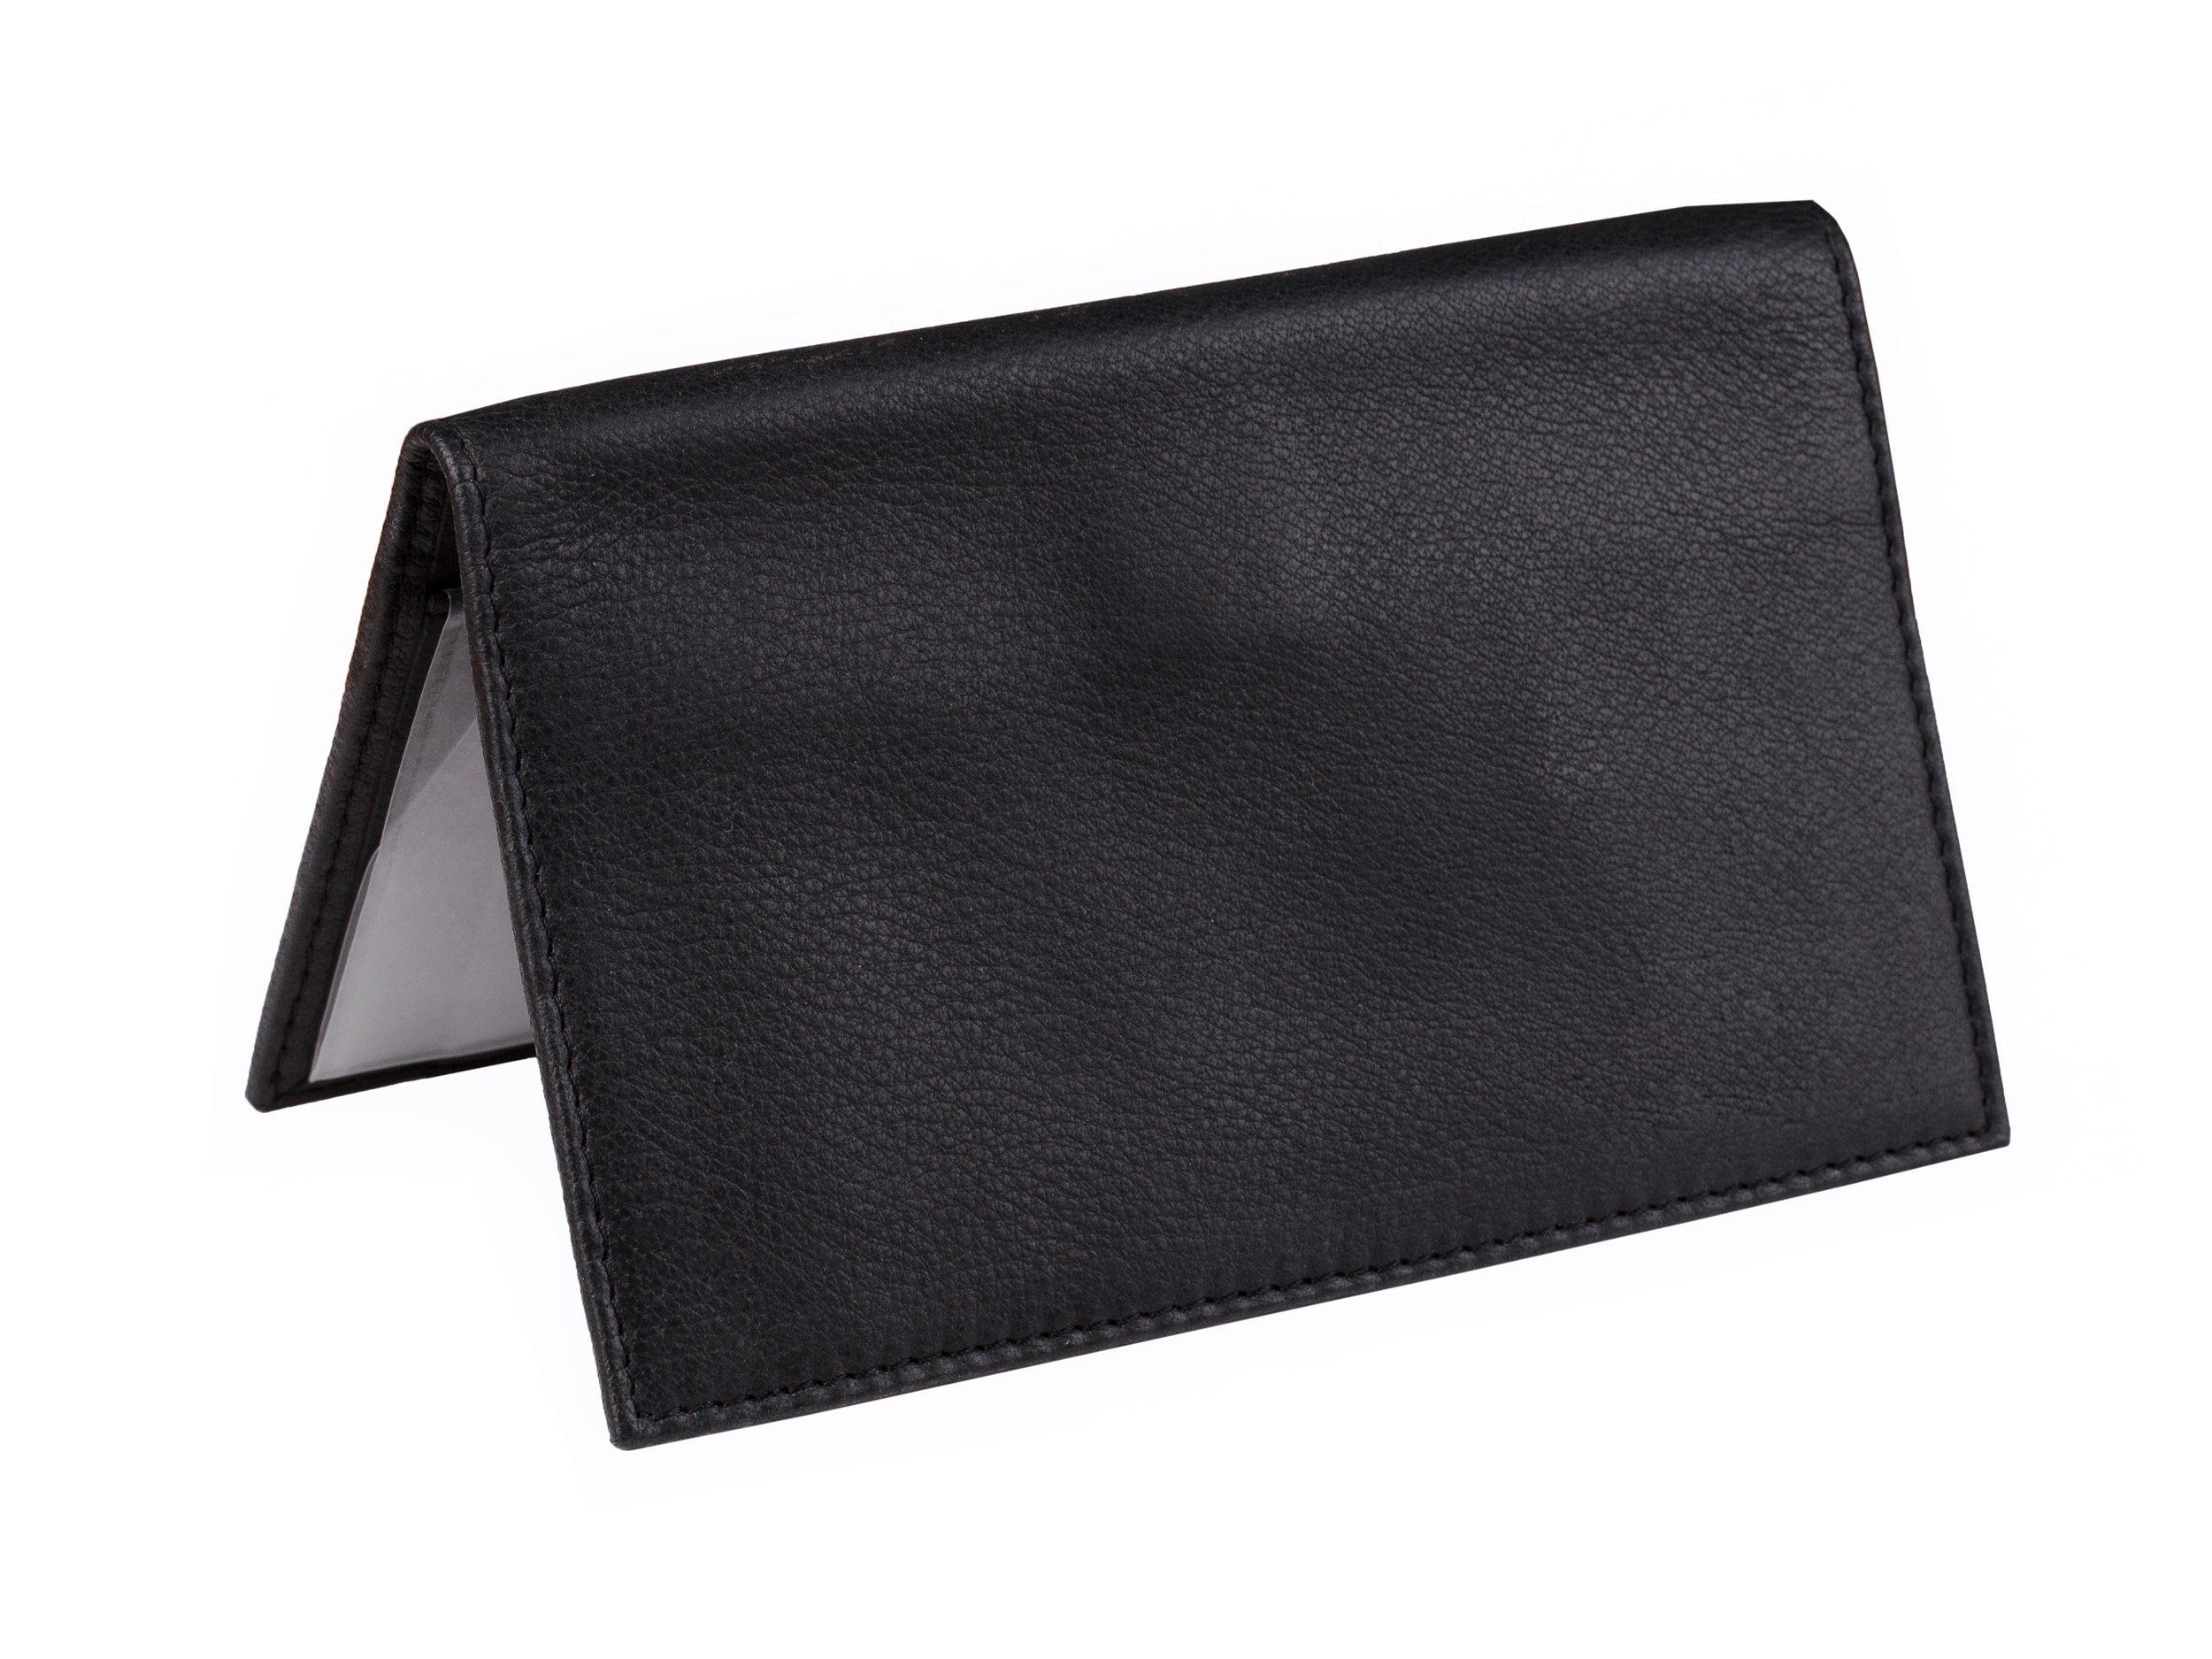 Dwellbee Premium Leather Checkbook and Register Cover with Pen Holder (Buffalo Leather, Black)